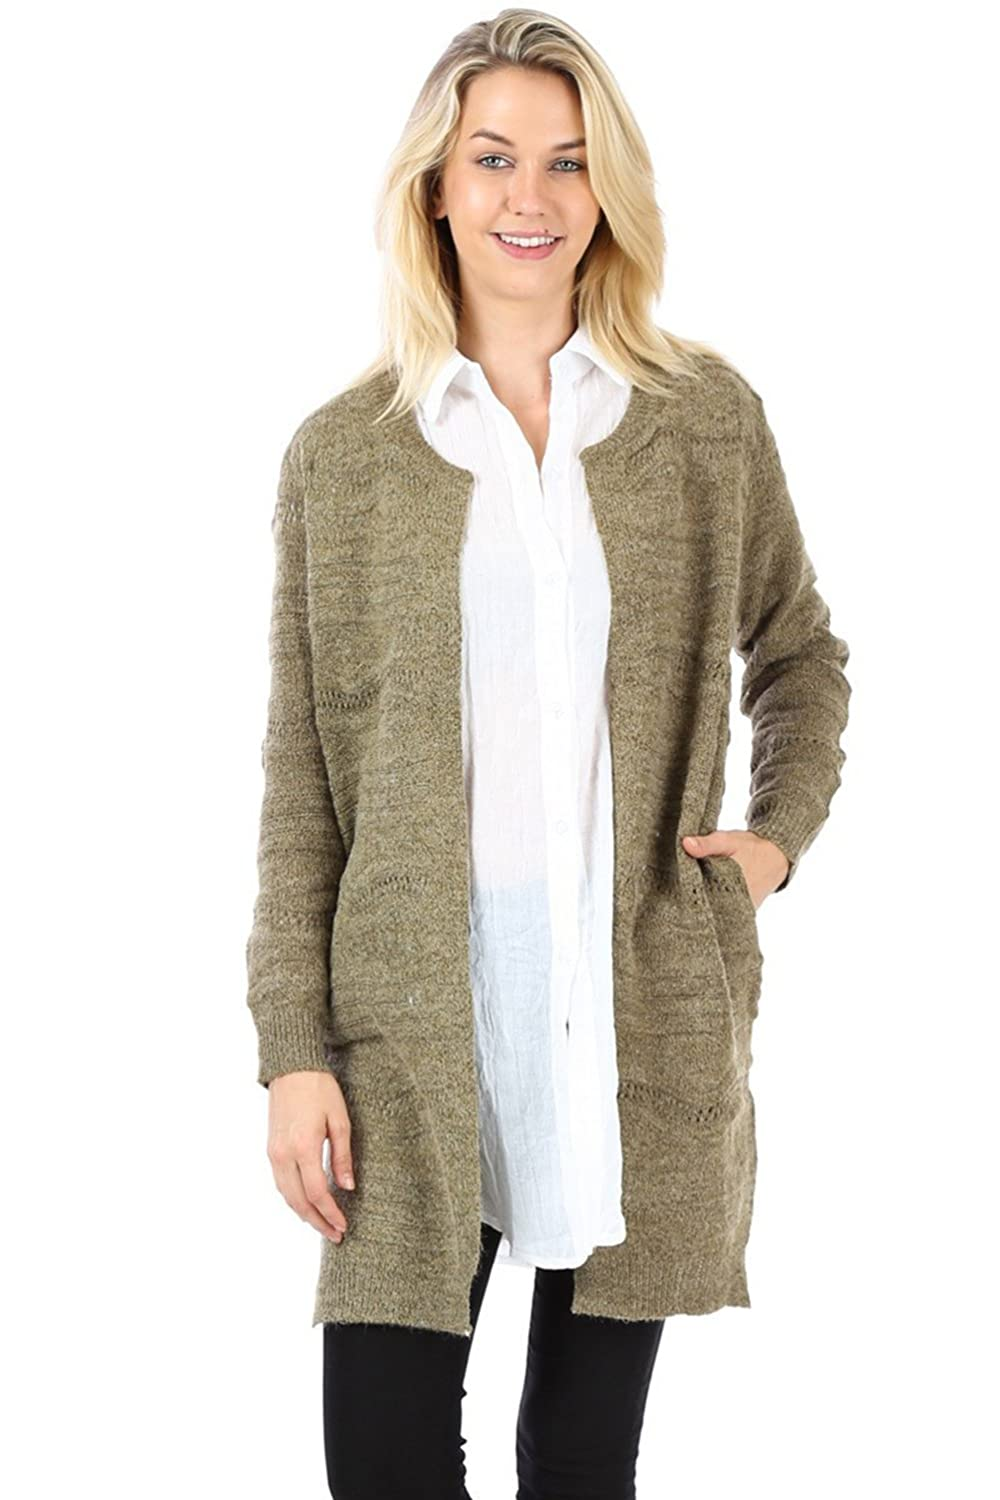 Bubble B Women's Long Sleeve Knitted Open Front Cardigan Olive Green One Size